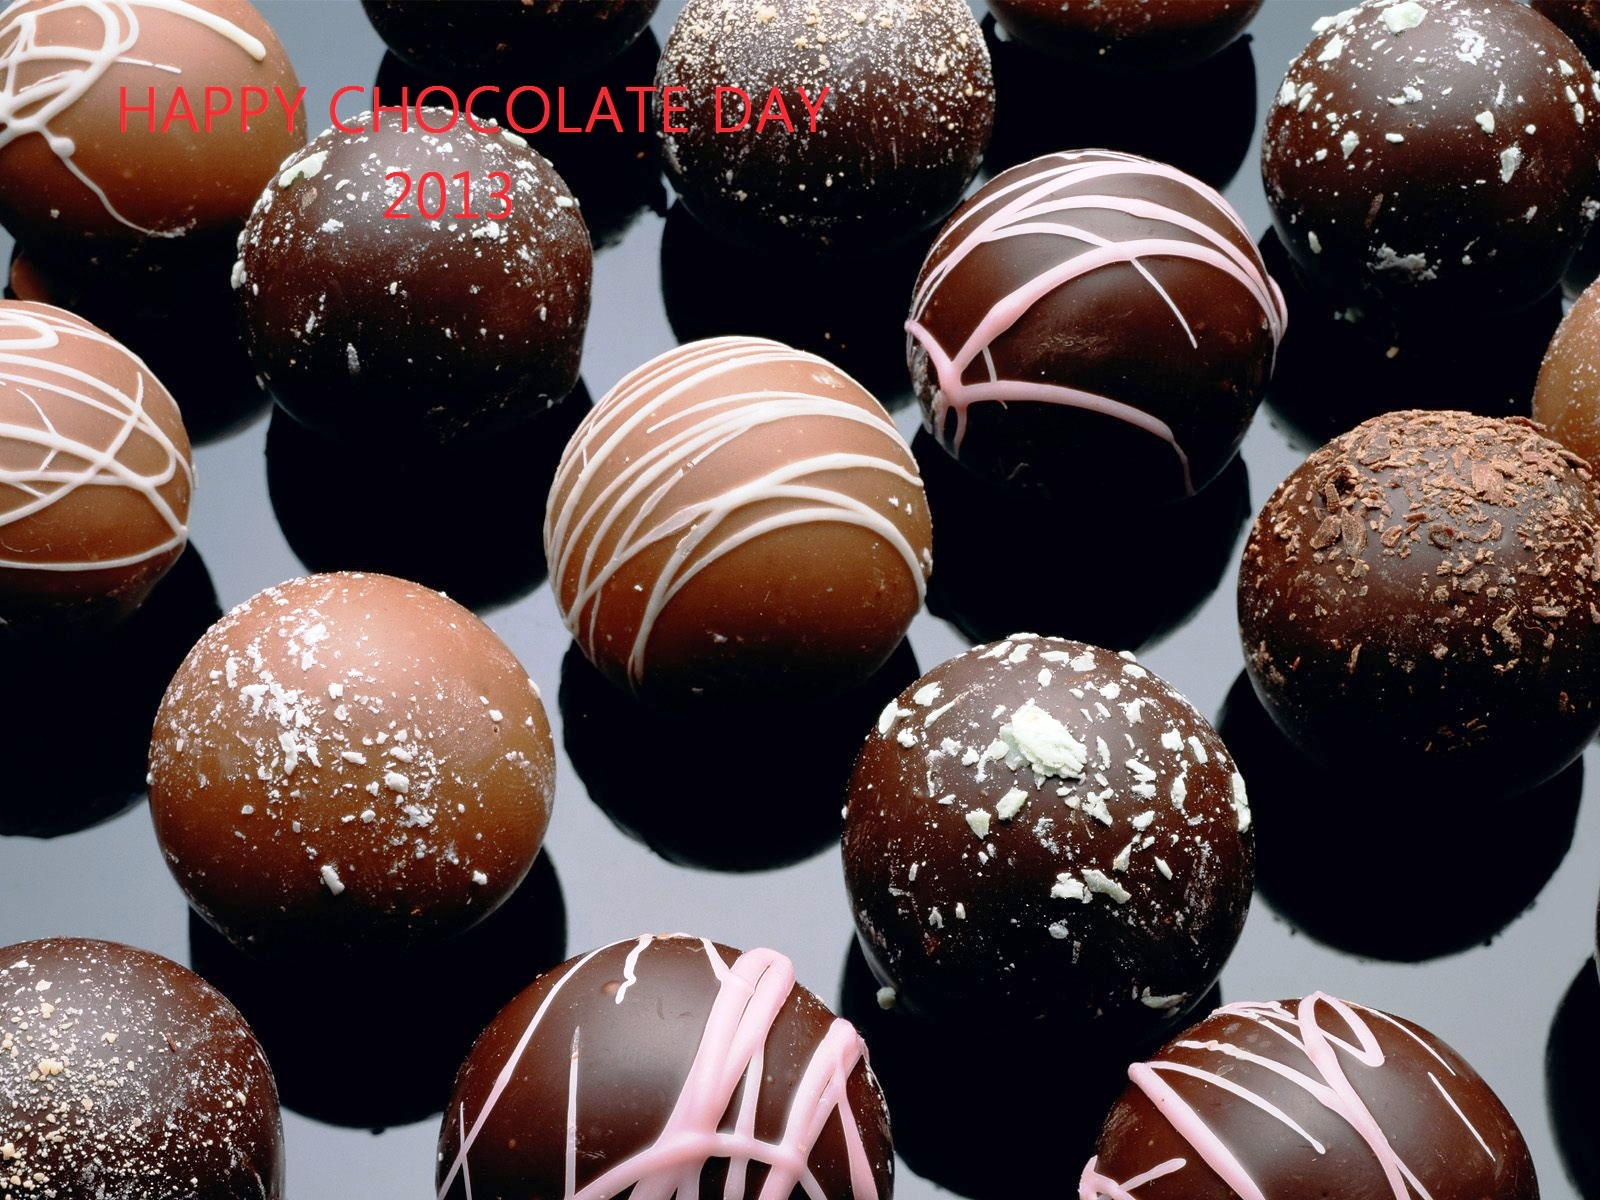 http://4.bp.blogspot.com/-2sXGaFLd08k/URI9RJoJQbI/AAAAAAAAA00/ufq-BYqci_M/s1600/chocolate-Day-HD-Wallpapers.jpg